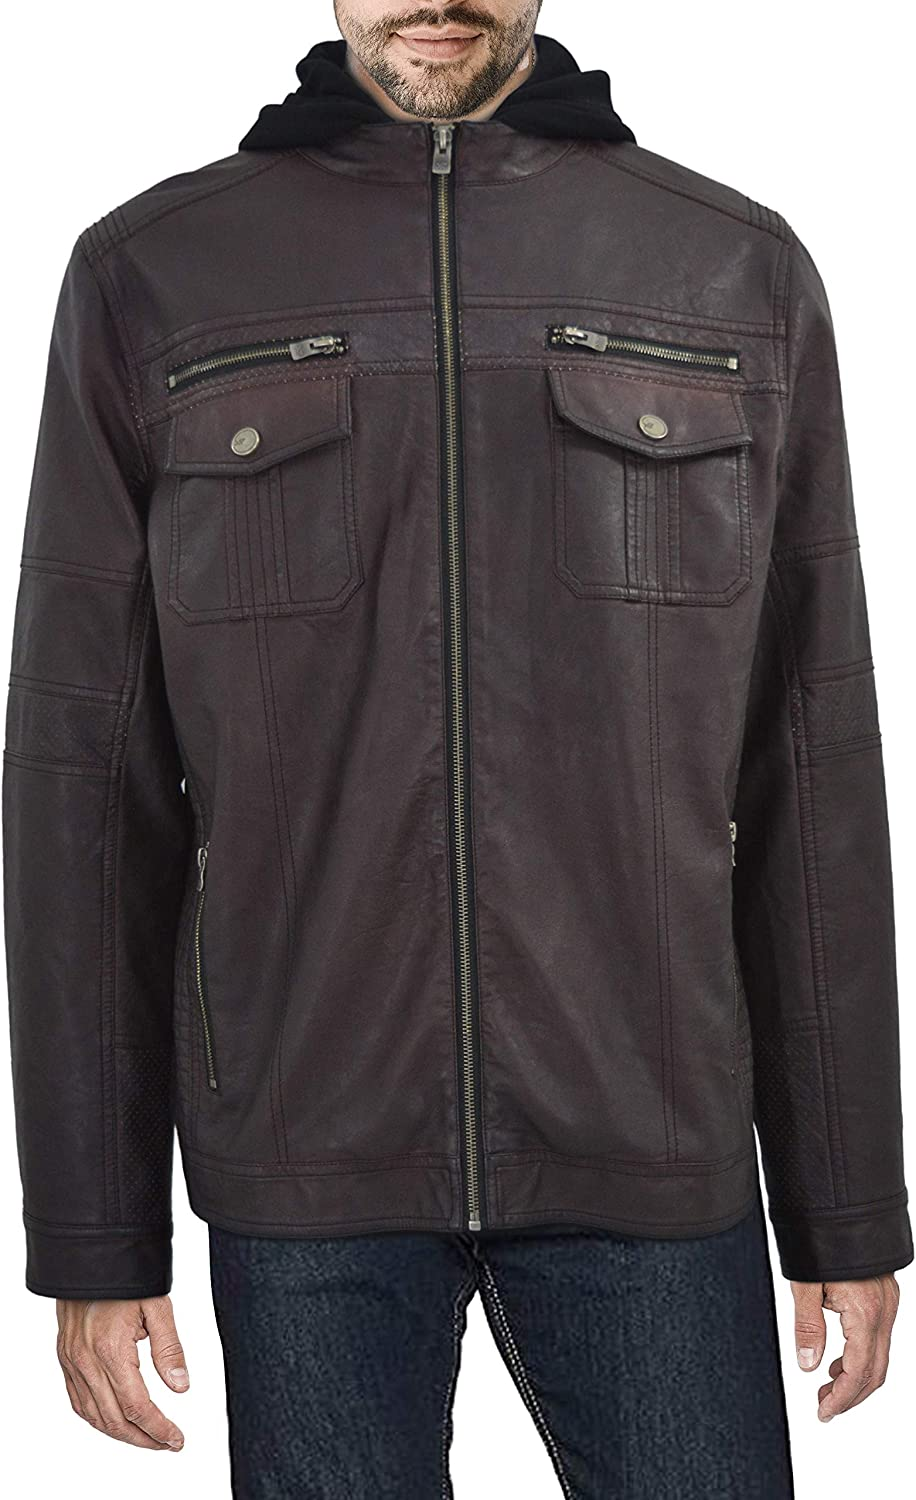 X Over item handling Cheap SALE Start RAY Mens Leather Biker Faux Jacket Motorcy Moto Casual